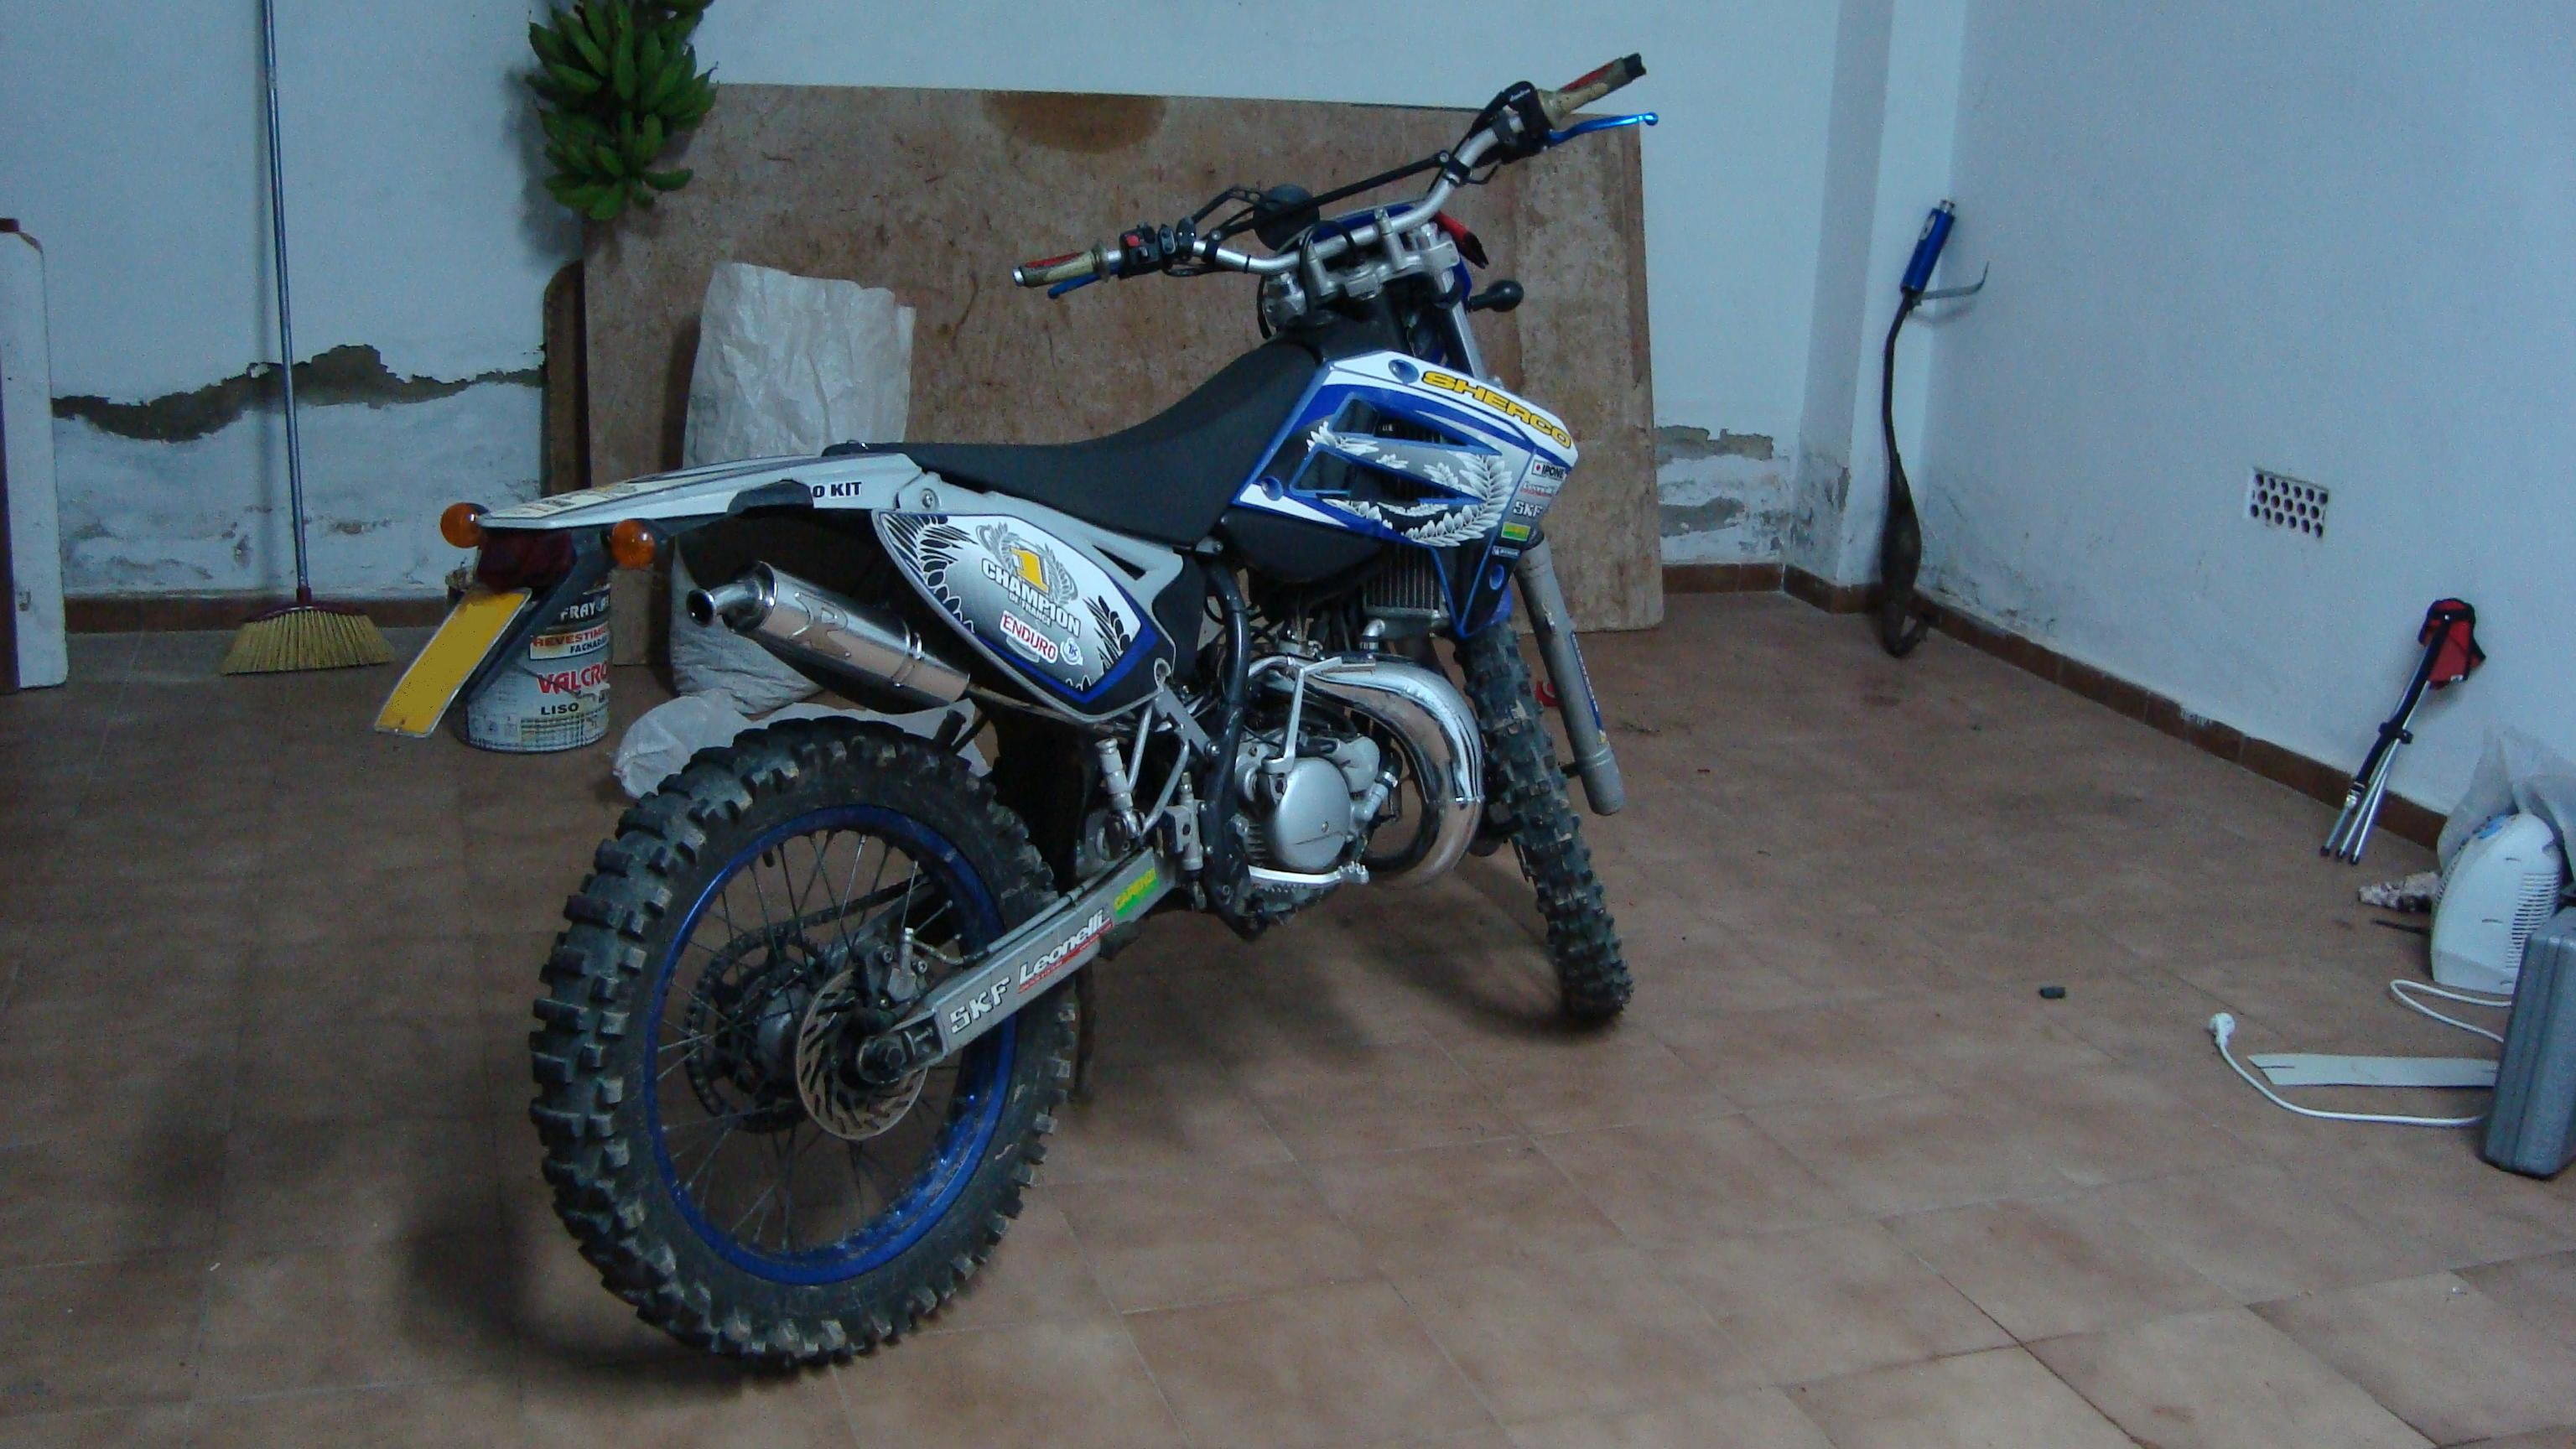 Sherco 125cc Enduro Shark Replica 2007 images #124658